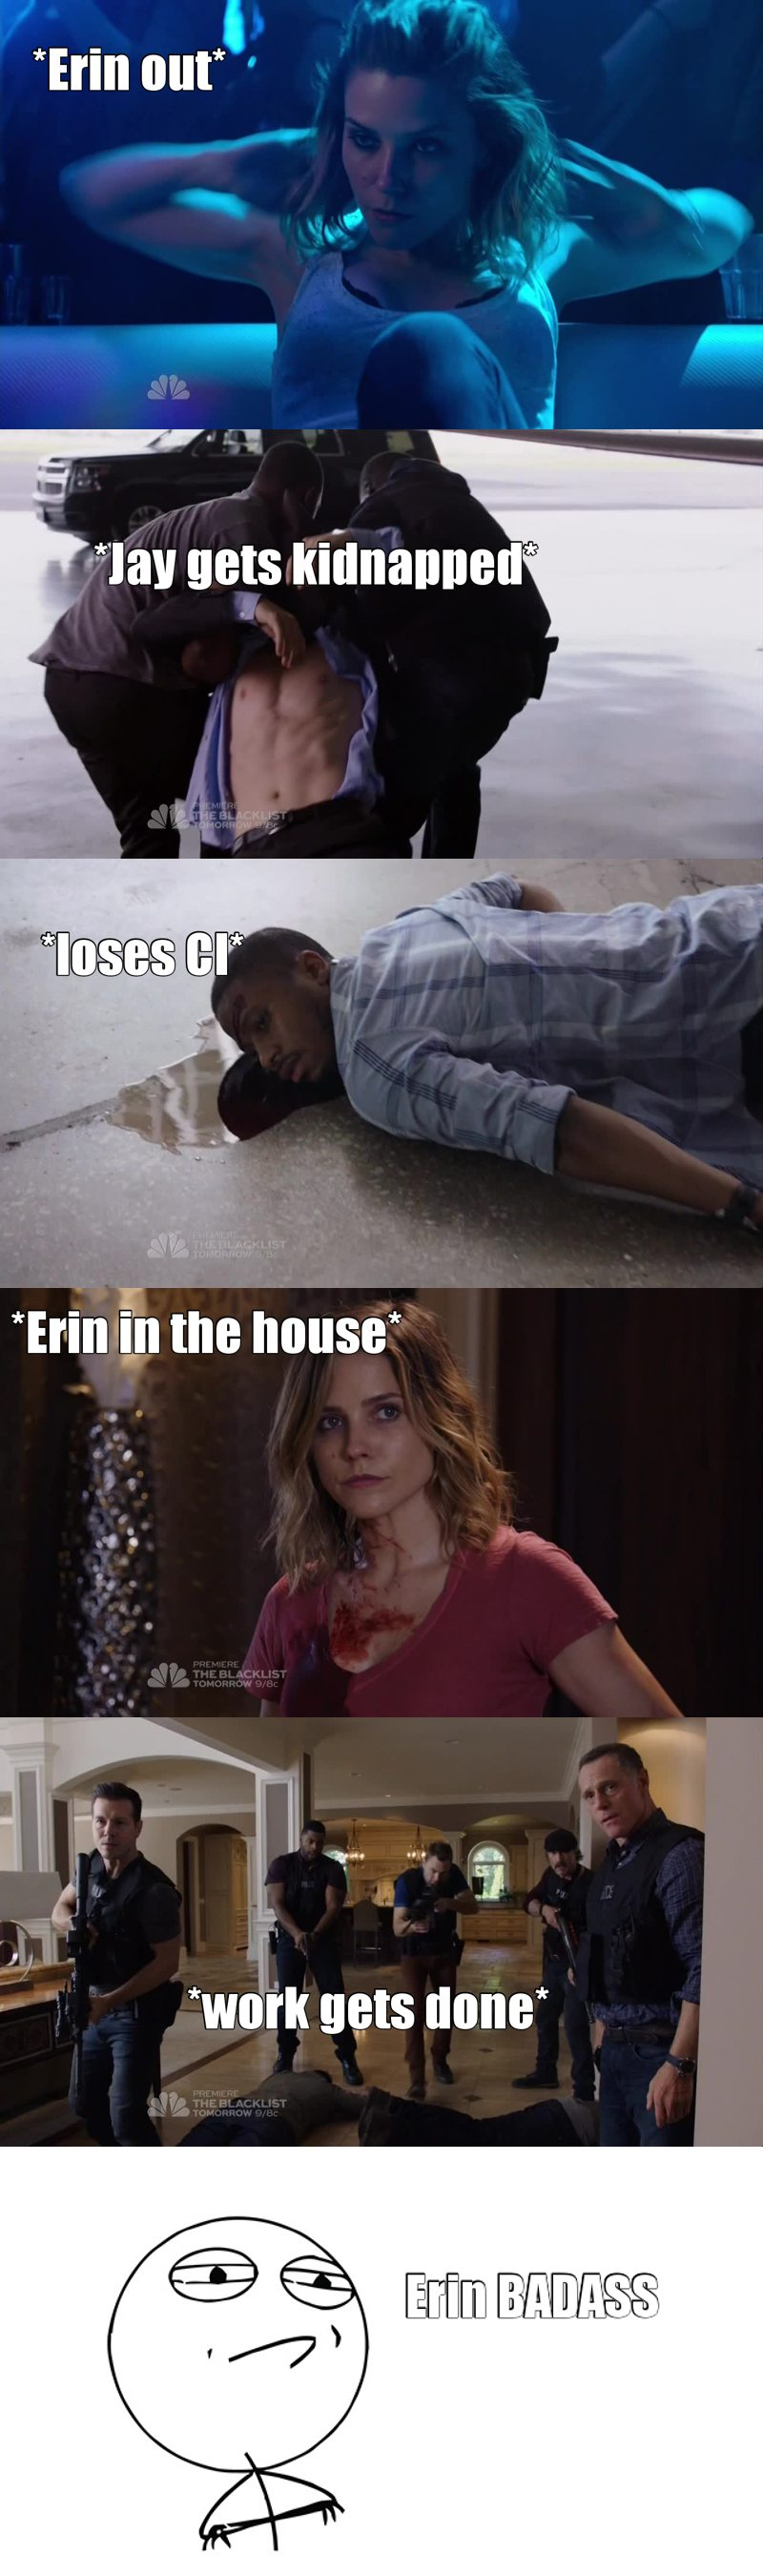 No Erin in the house VS Erin in the house! YAS